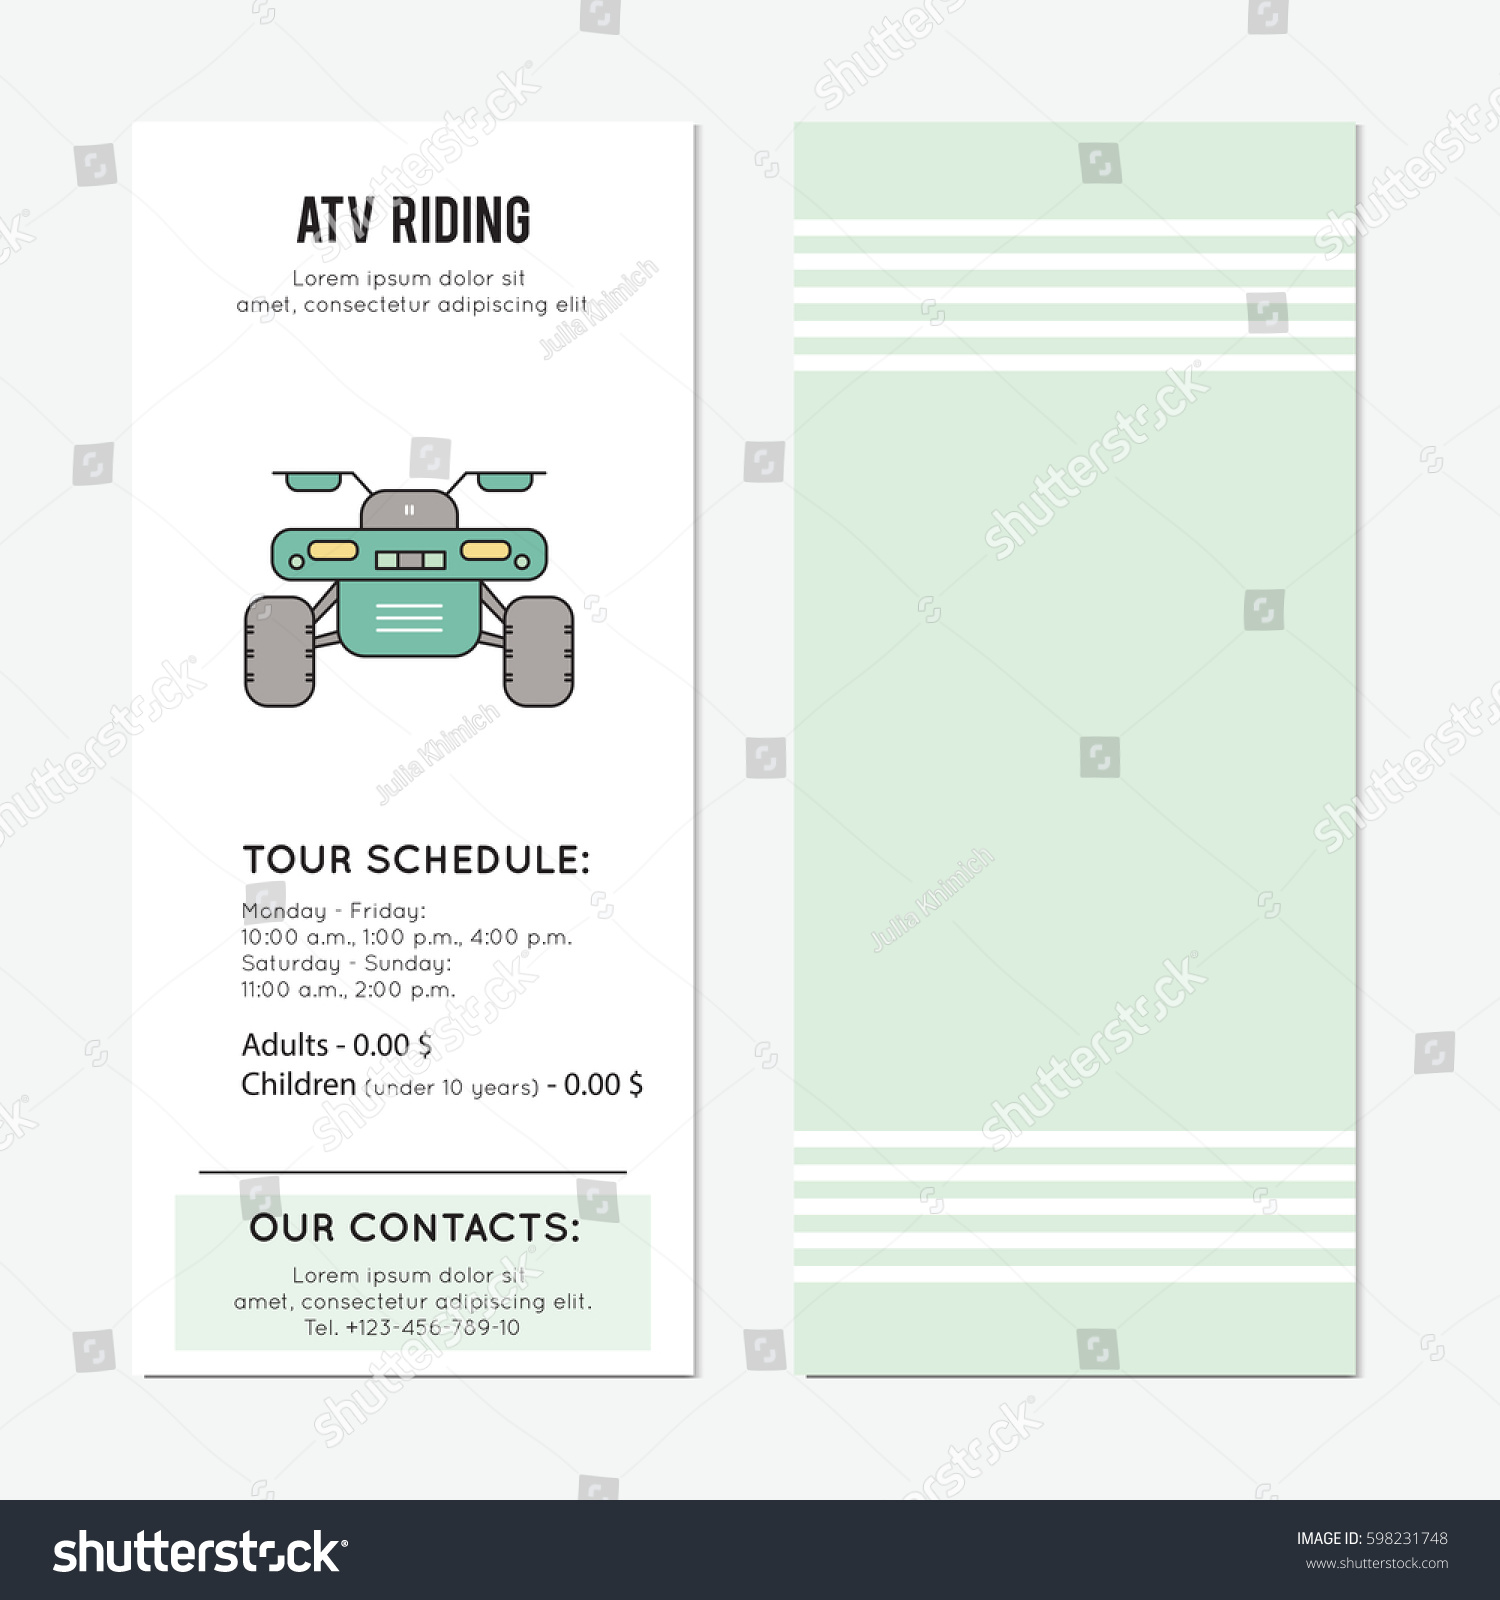 tour schedule template